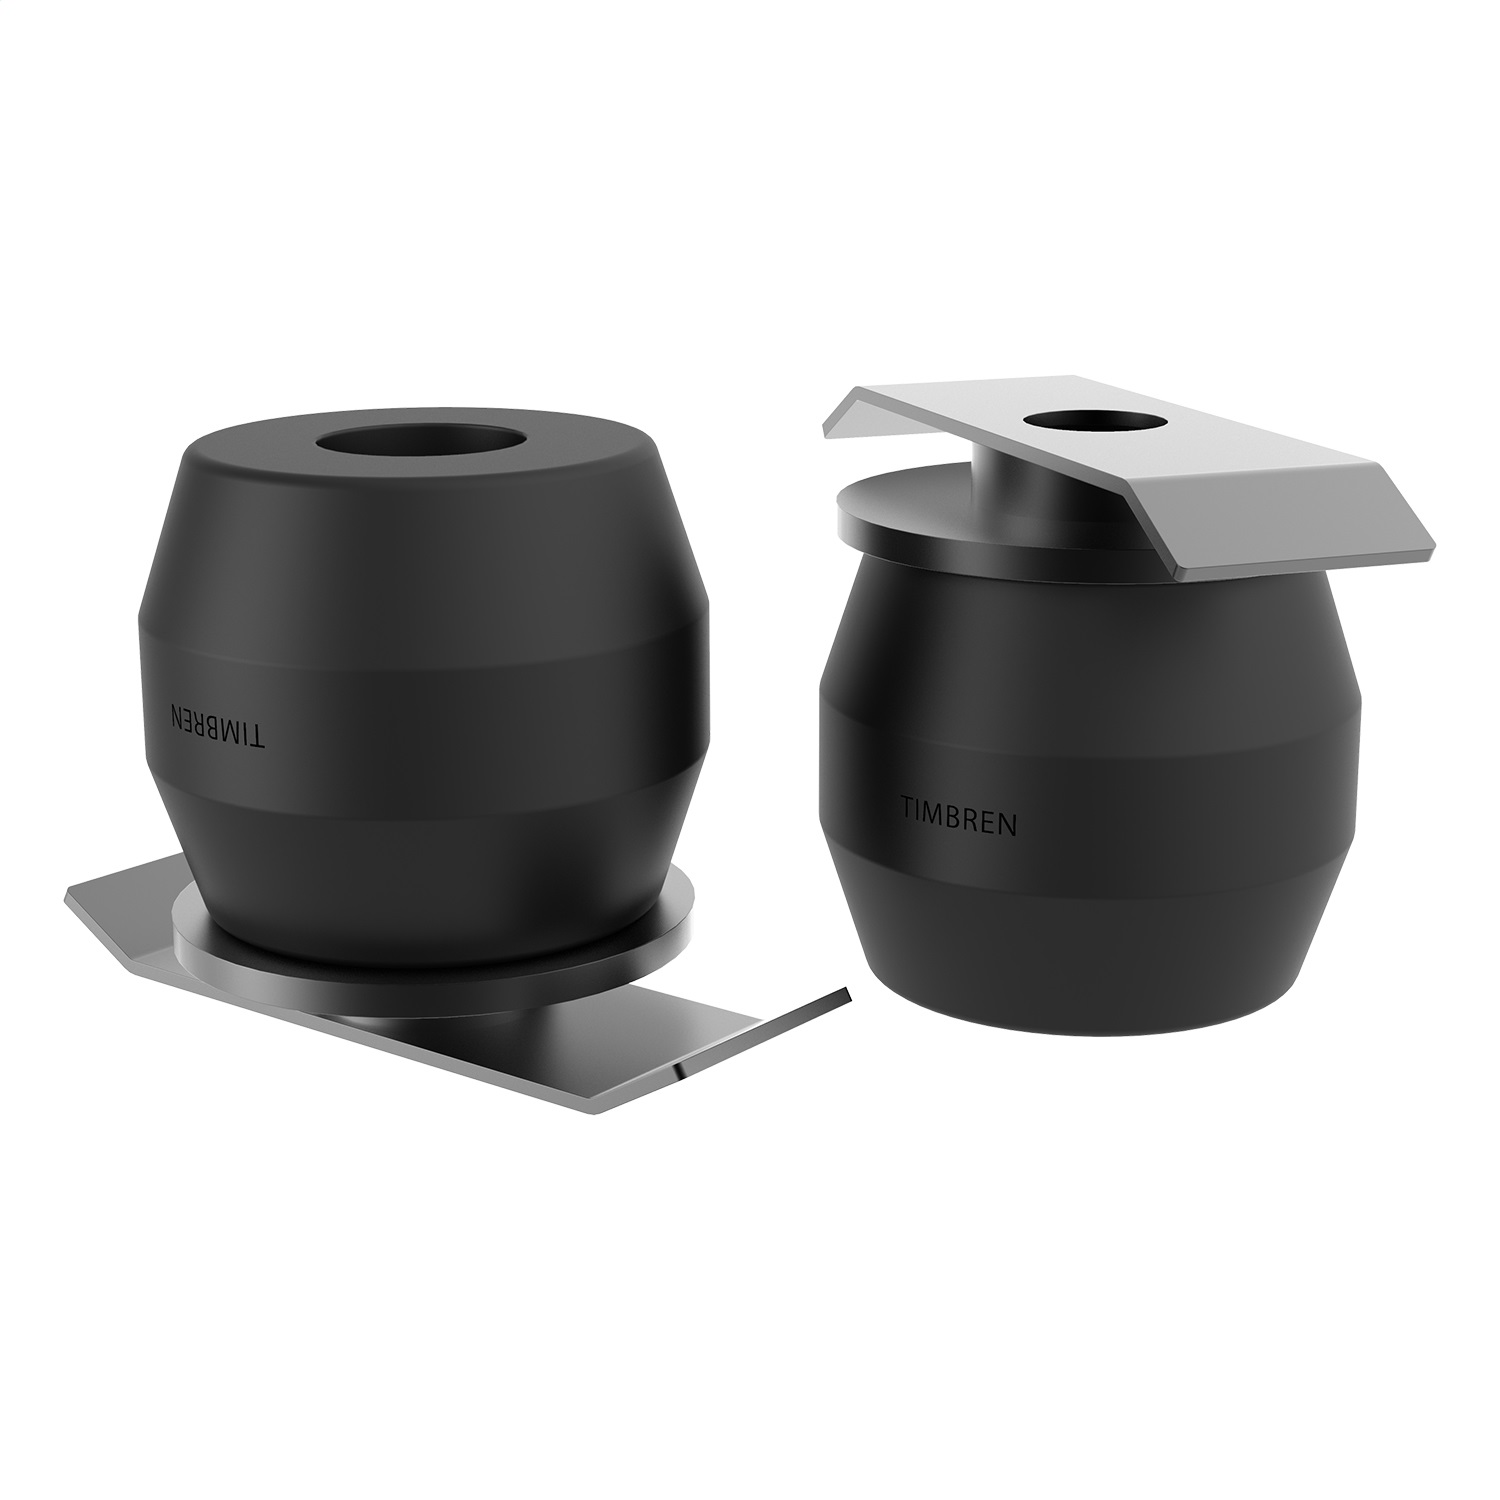 Timbren TORTTNL Suspension Enhancement System Fits 05-21 Tacoma